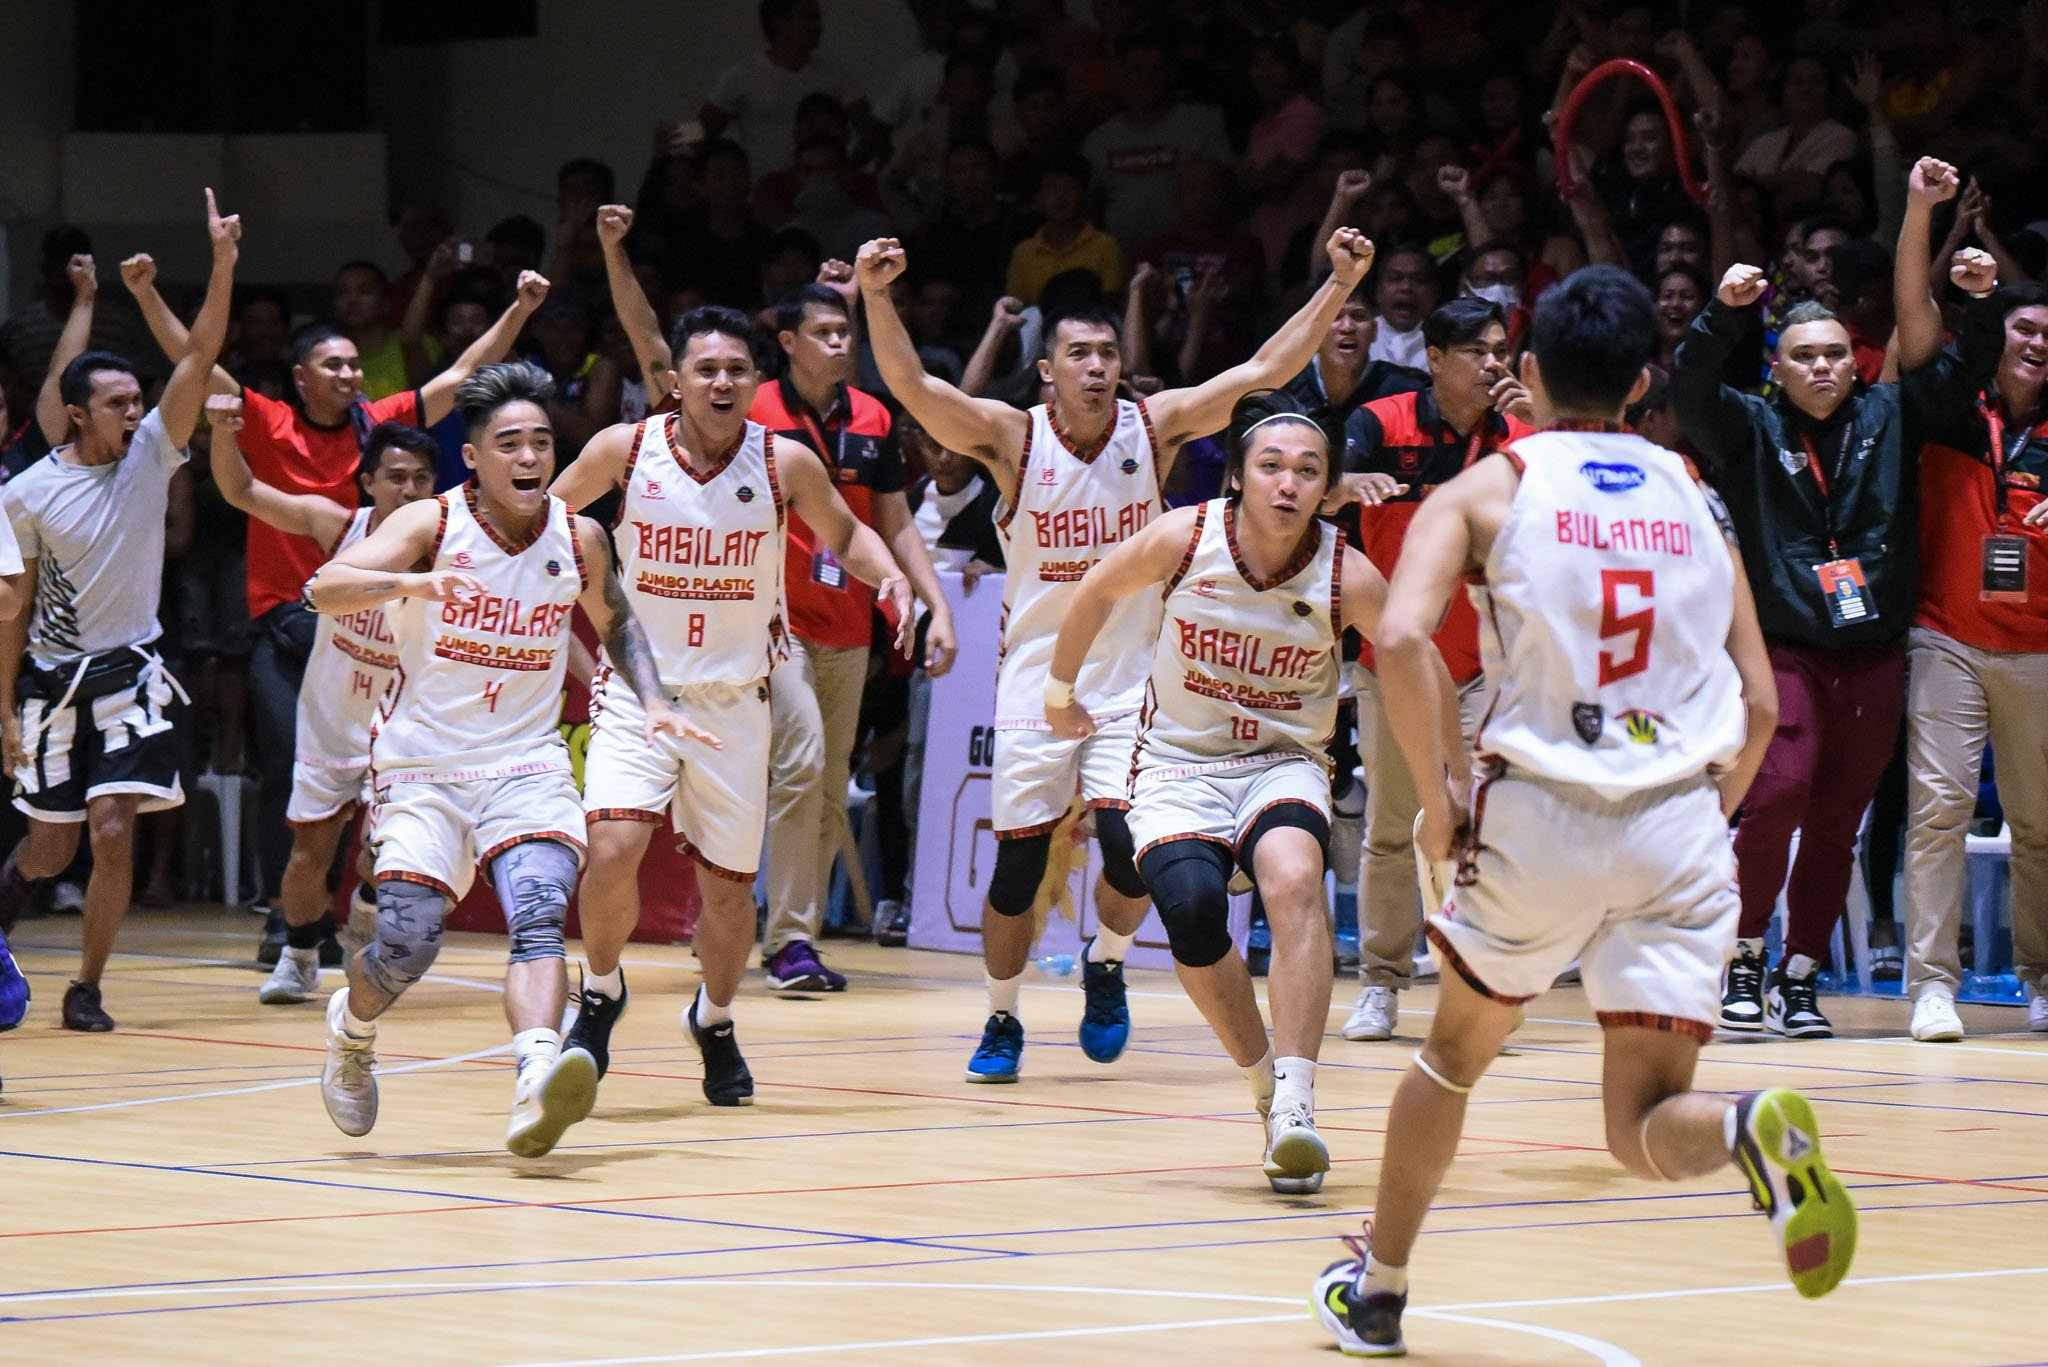 MPBL-2019-2020-Davao-vs.-Basilan-4TH-PHOTO-BASILAN Hesed Gabo goes from zero to hero for Basilan Steel Basketball MPBL News  - philippine sports news